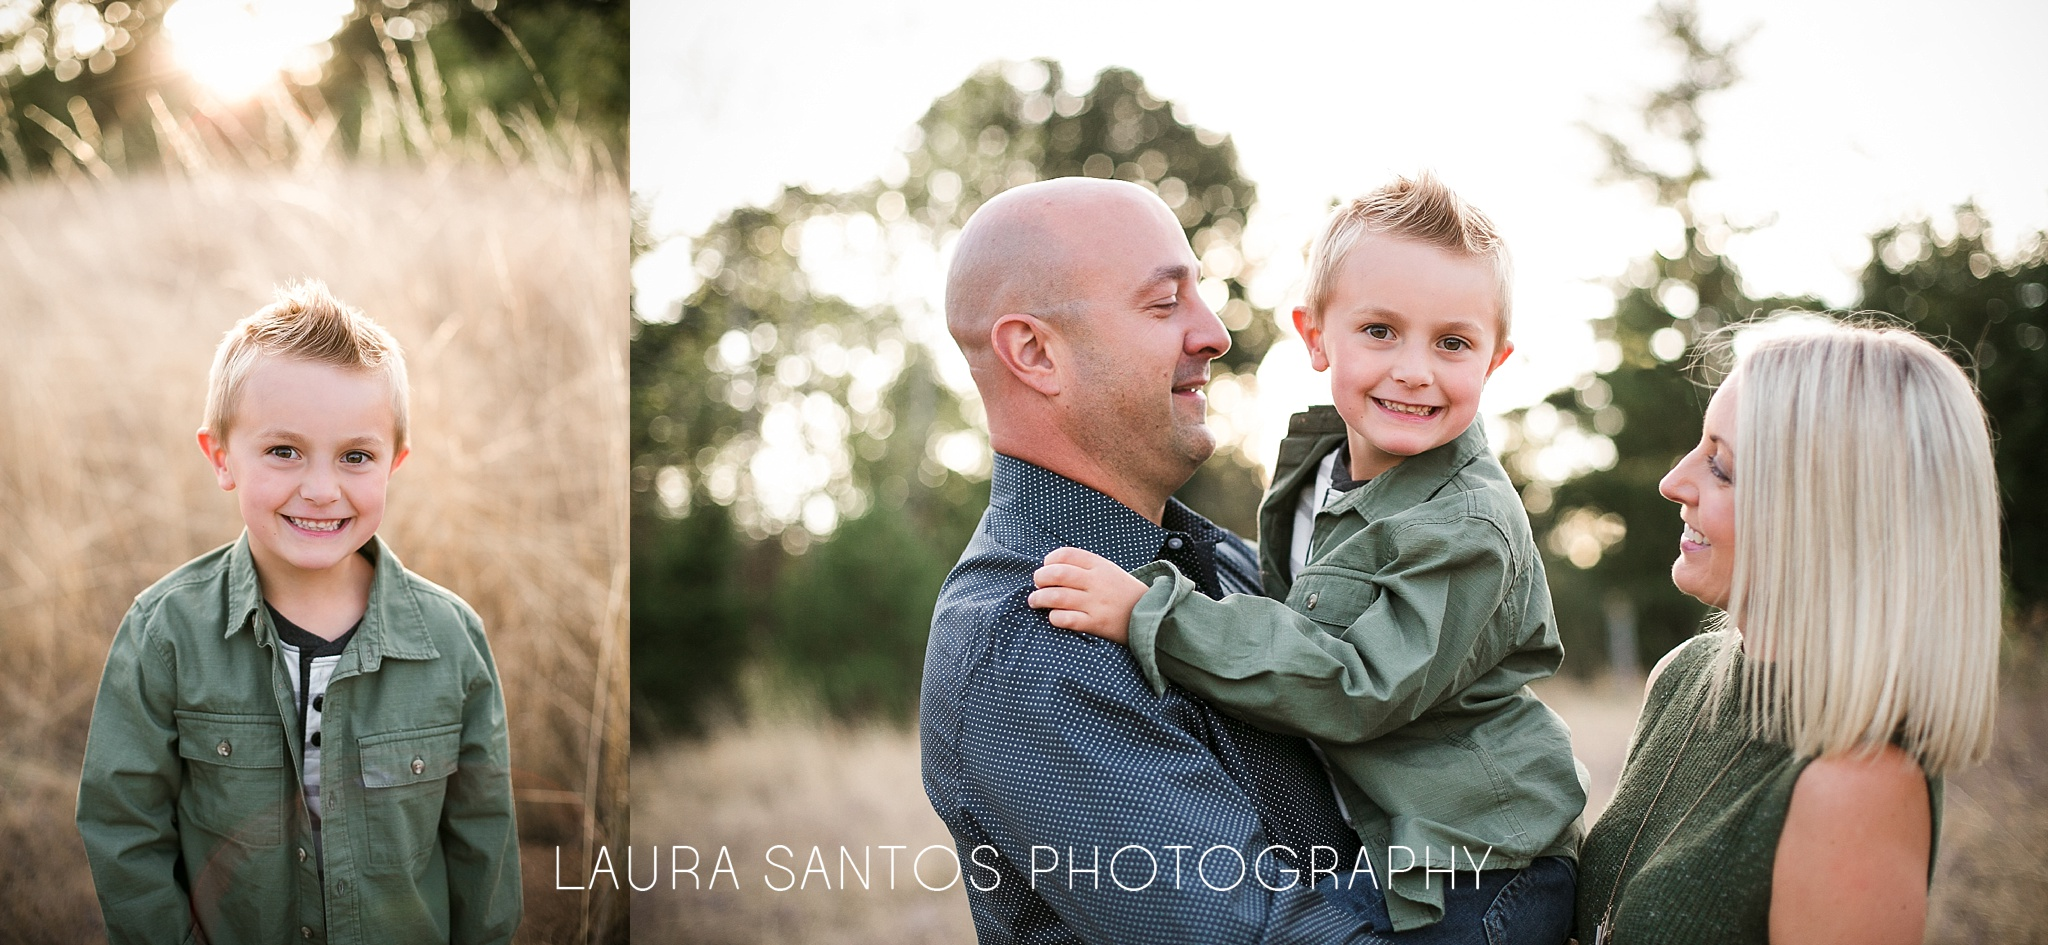 Laura Santos Photography Portland Oregon Family Photographer_0411.jpg